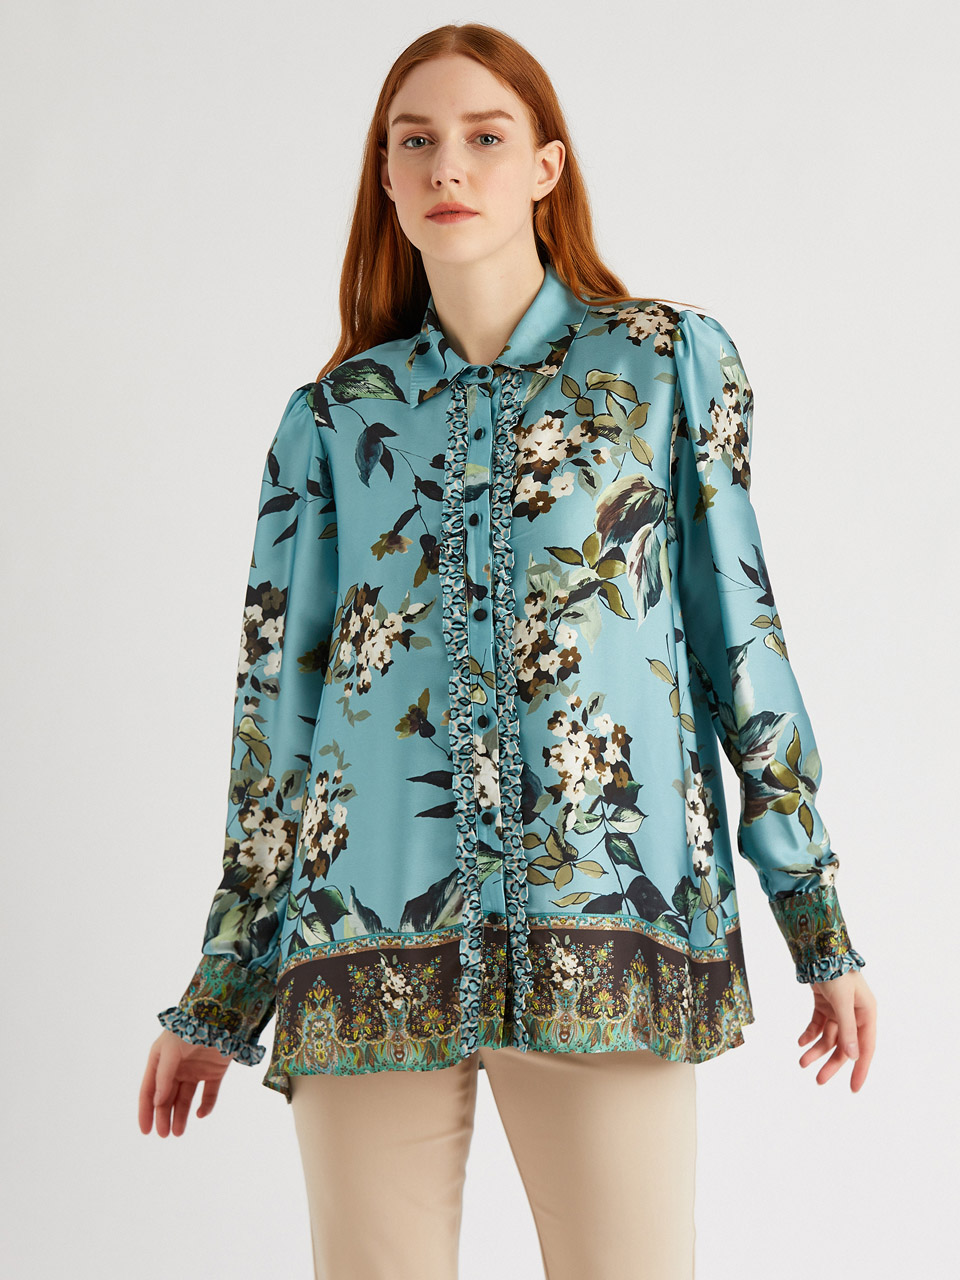 Floral Patterned Shirt With Frilly Details